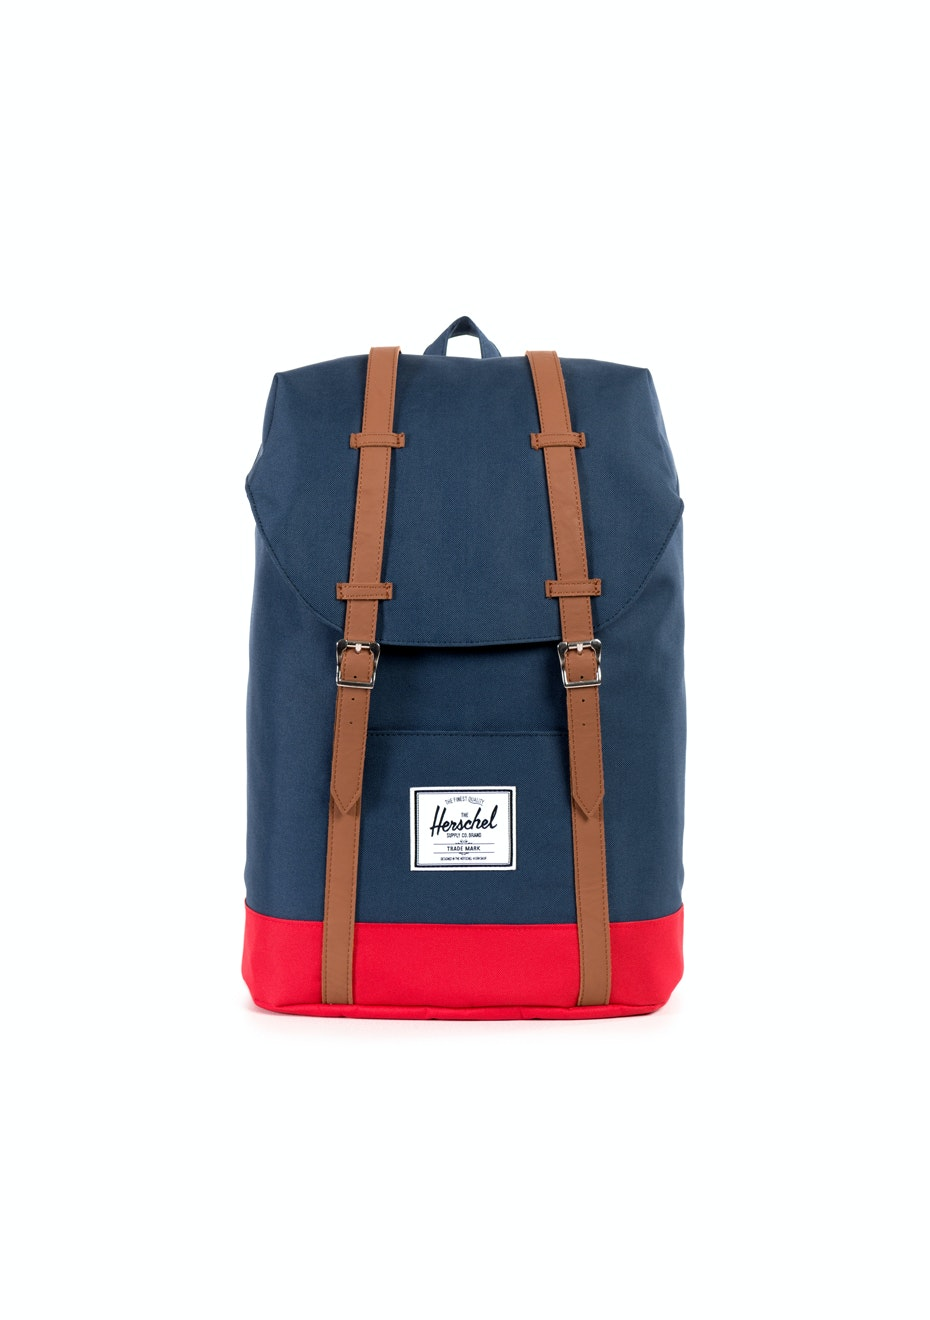 Herschel Supply Co - Retreat - Navy/Red/Tan Synthetic Leather